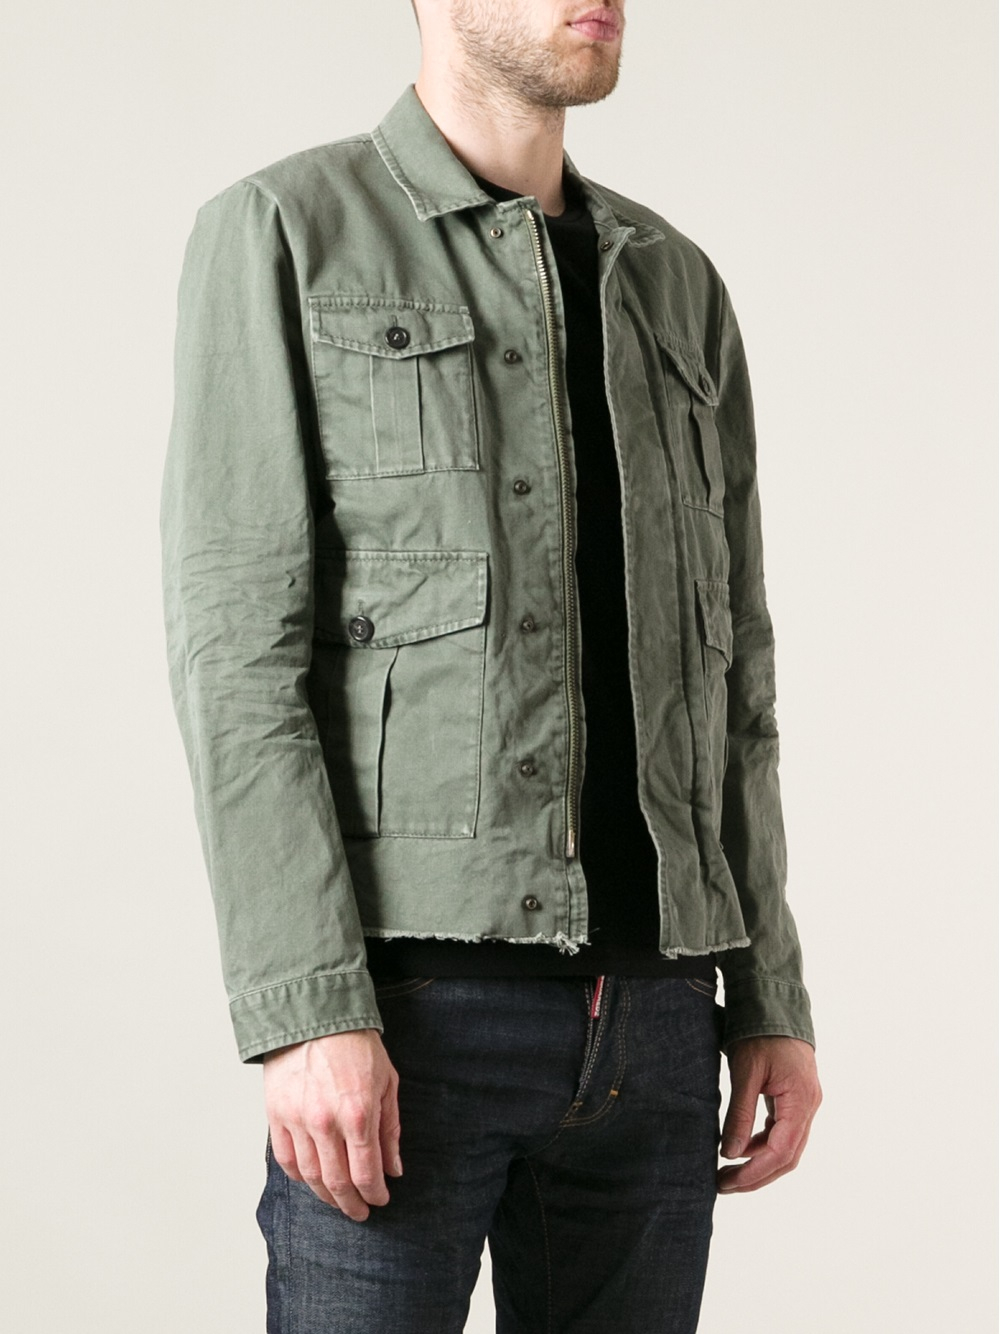 Green Denim Jacket Mens - JacketIn